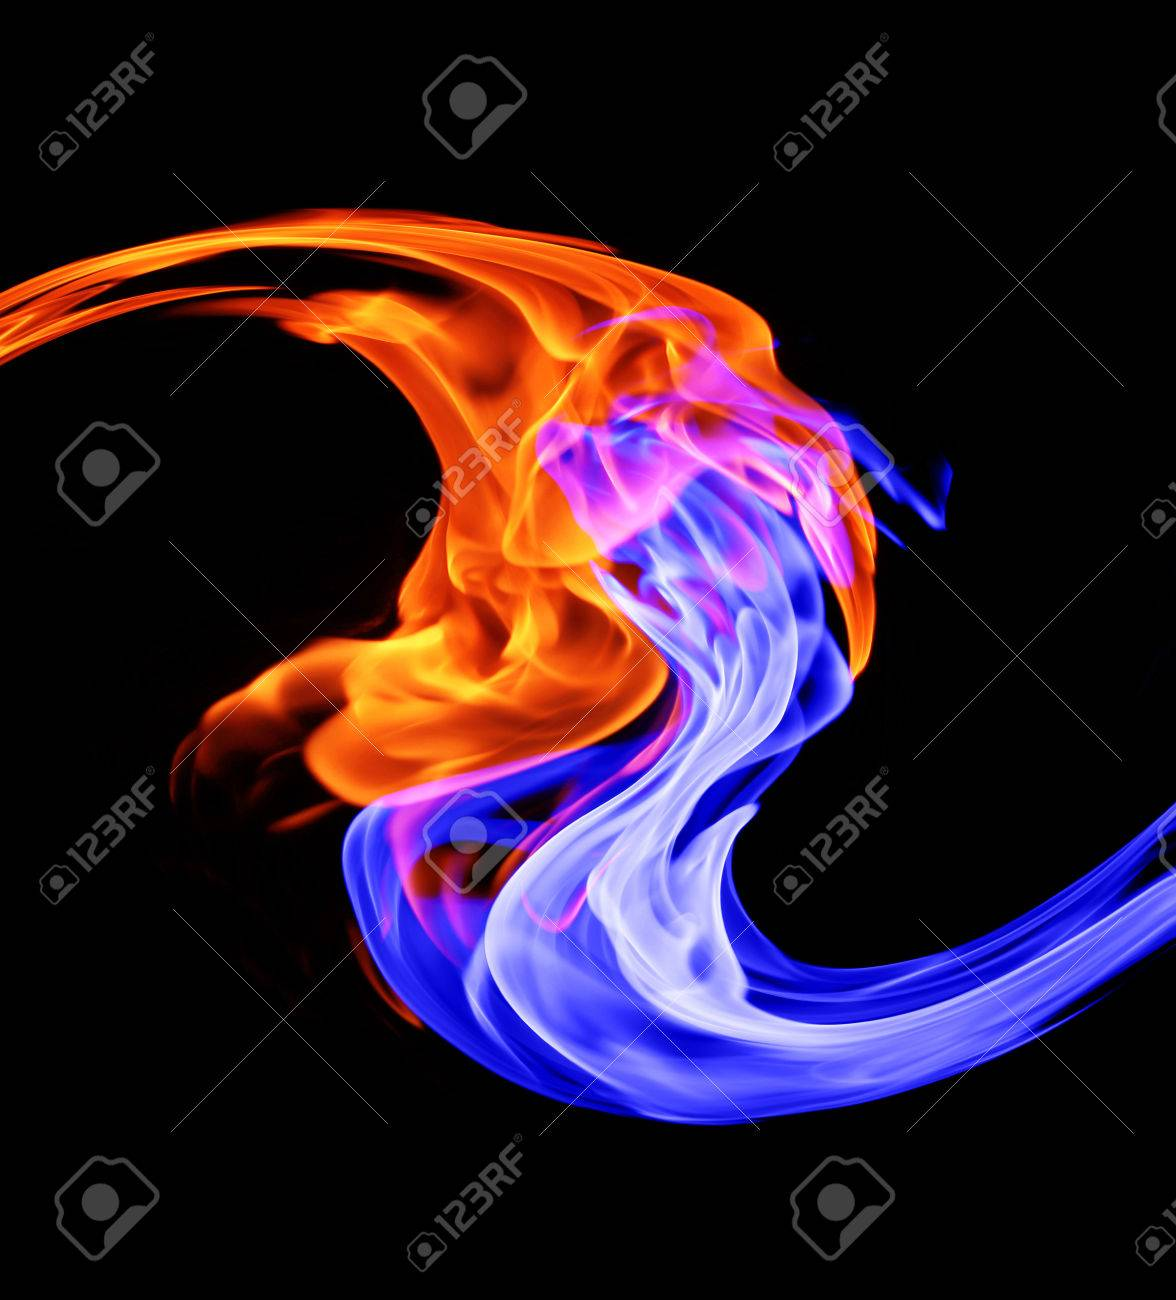 Yin Yang Symbol Ice And Fire Stock Photo Picture And Royalty Free